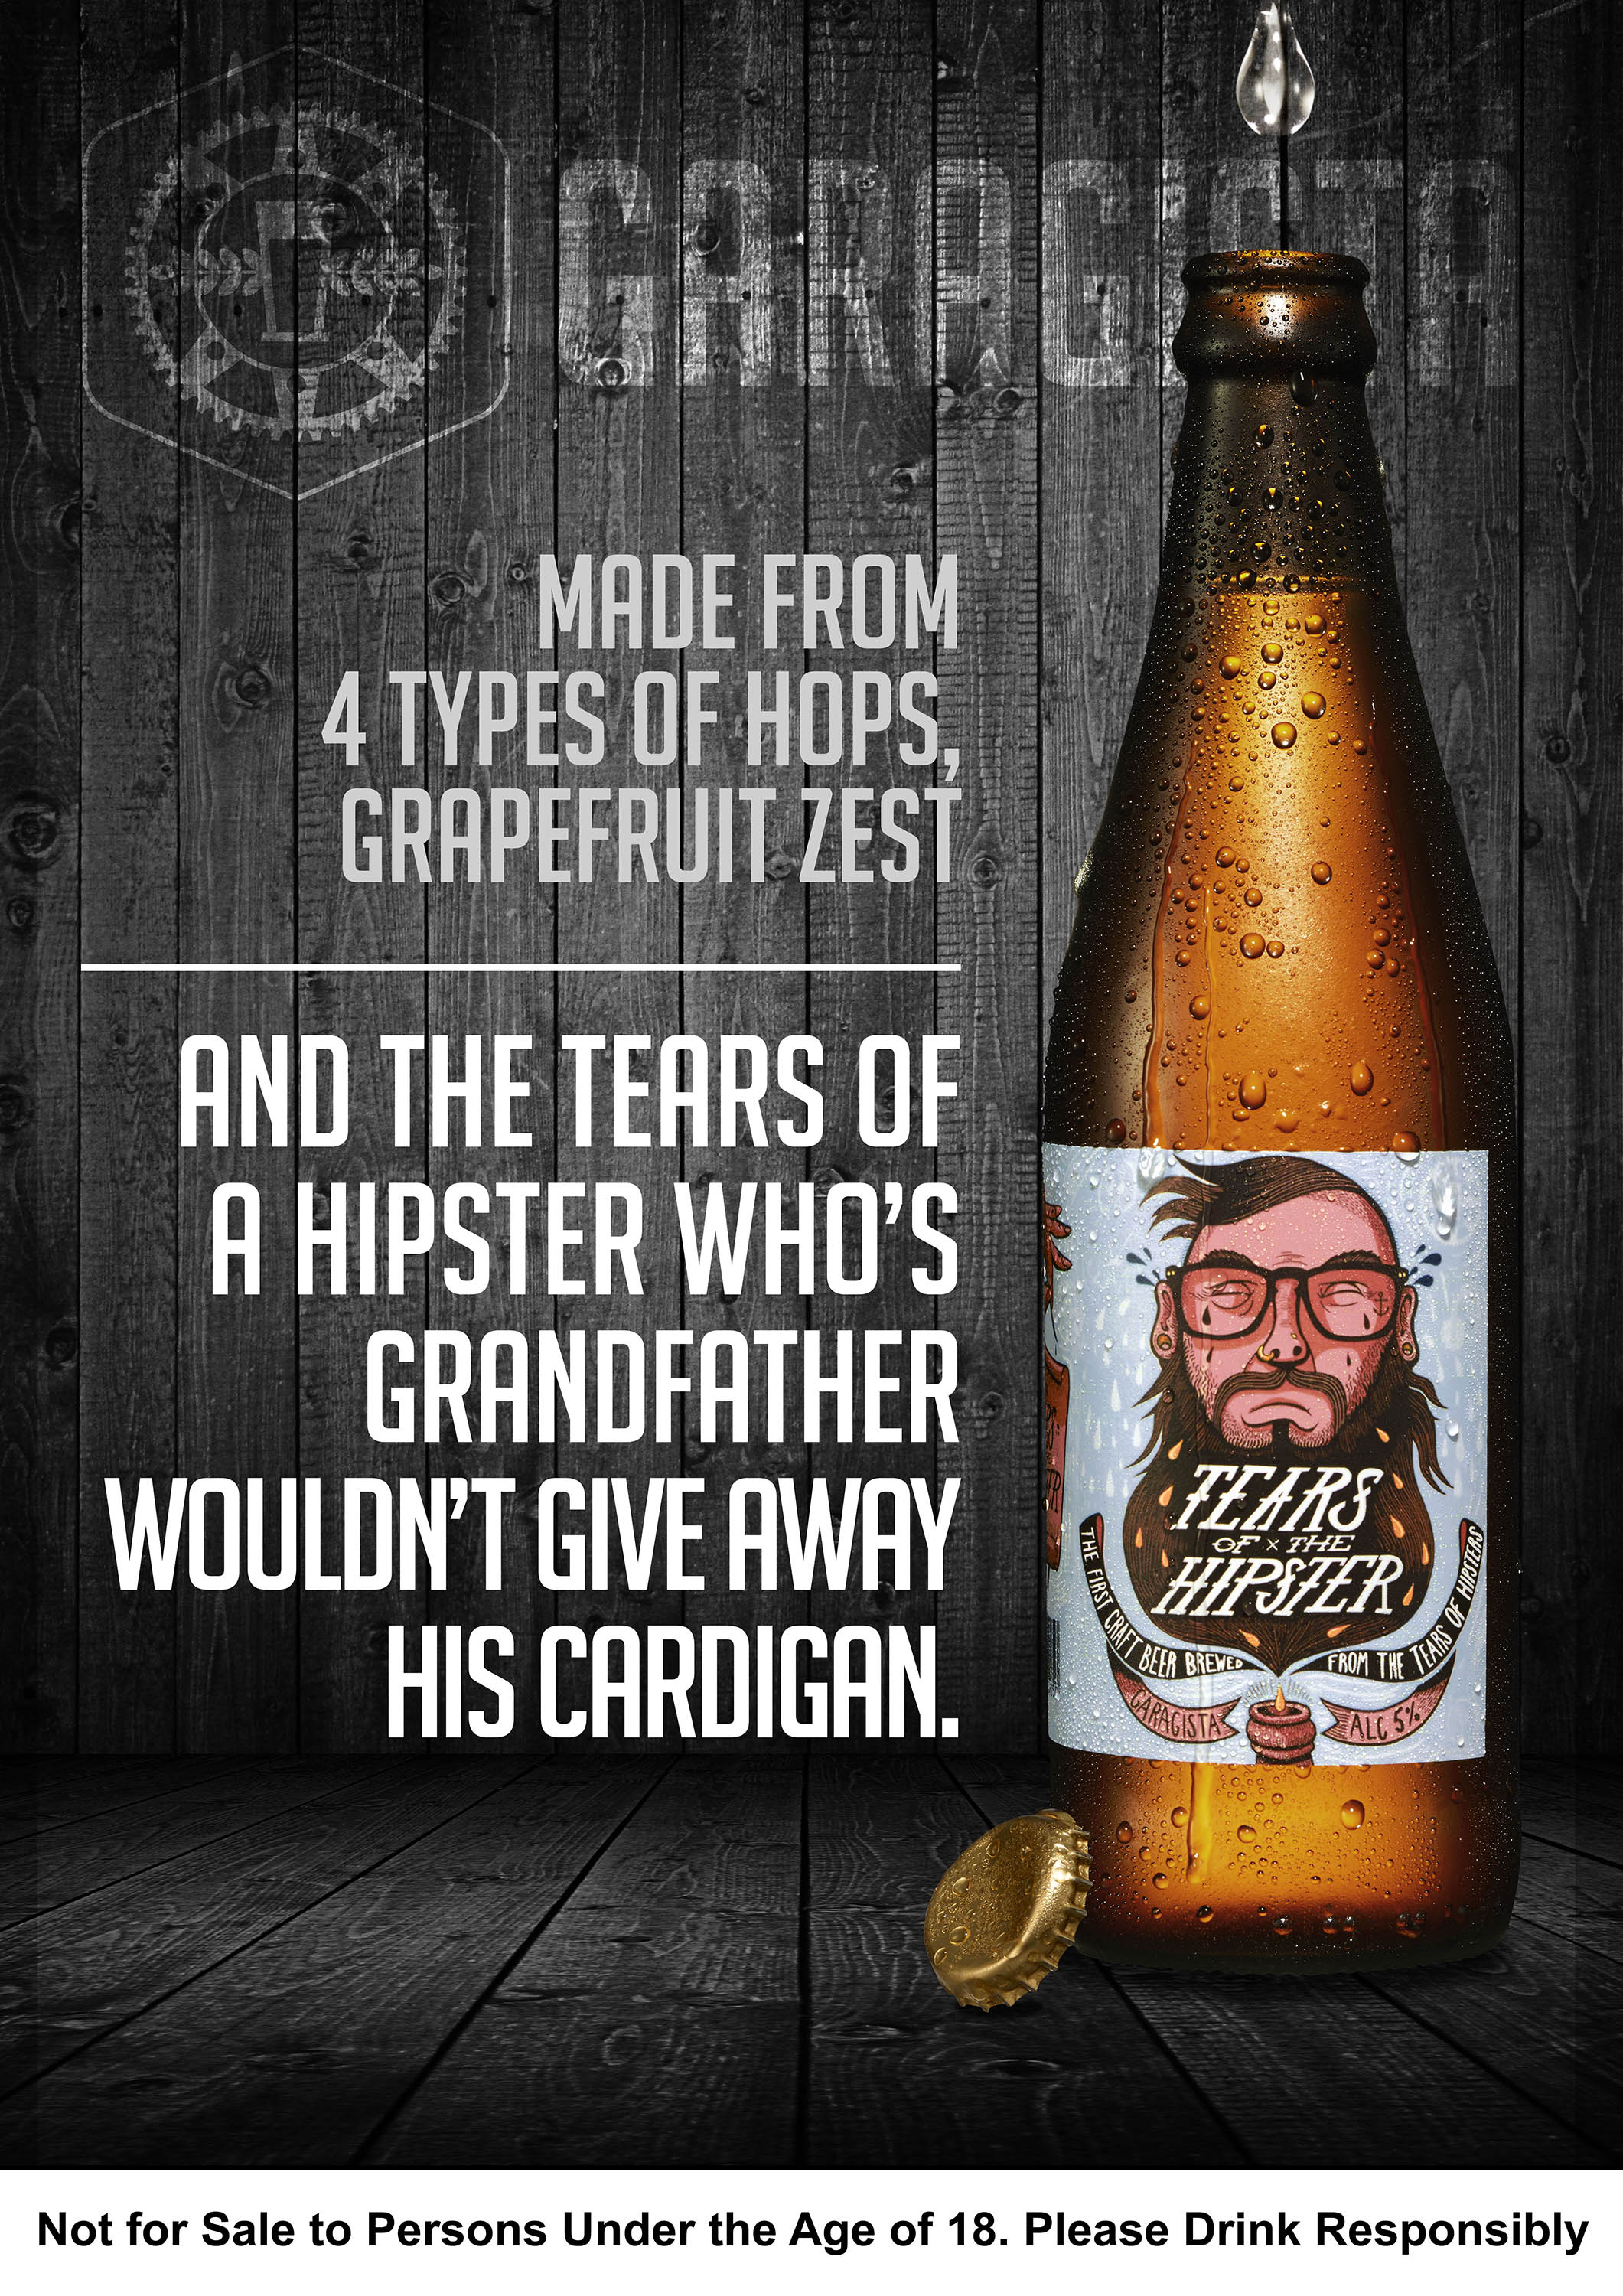 Garagista tears of the hipster